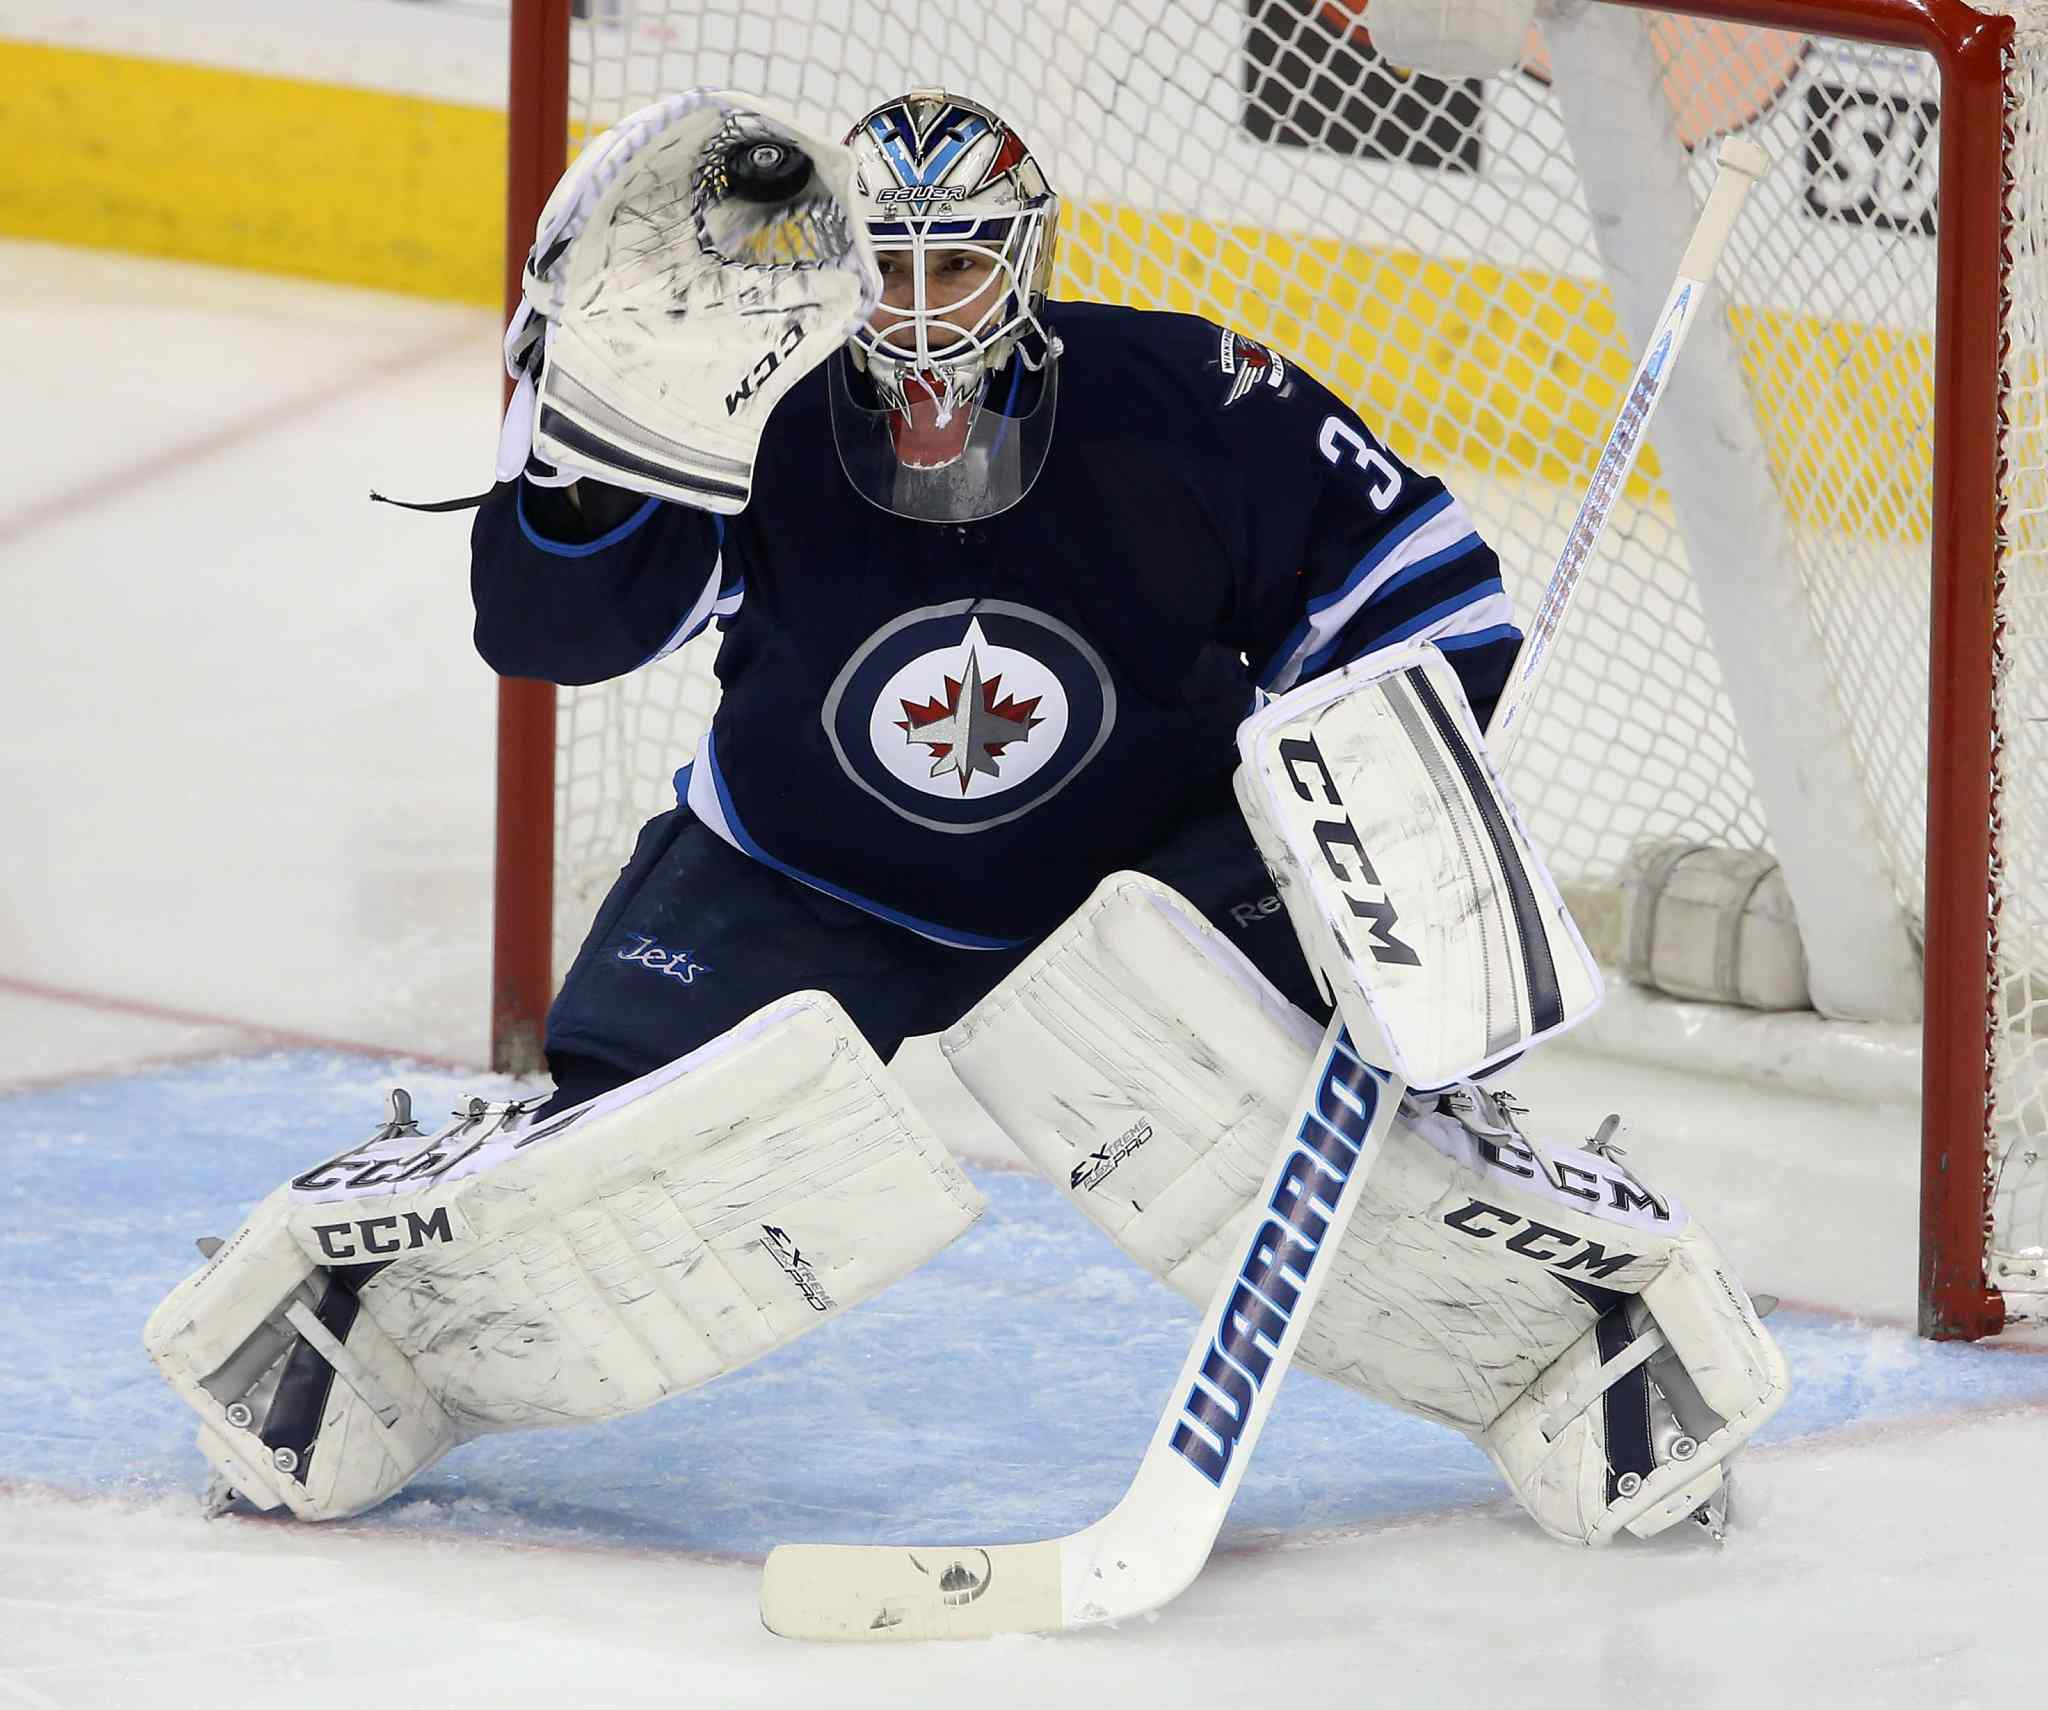 In his first NHL start, Jets goaltender Michael Hutchinson makes a glove save against the Minnesota Wild during the first period.